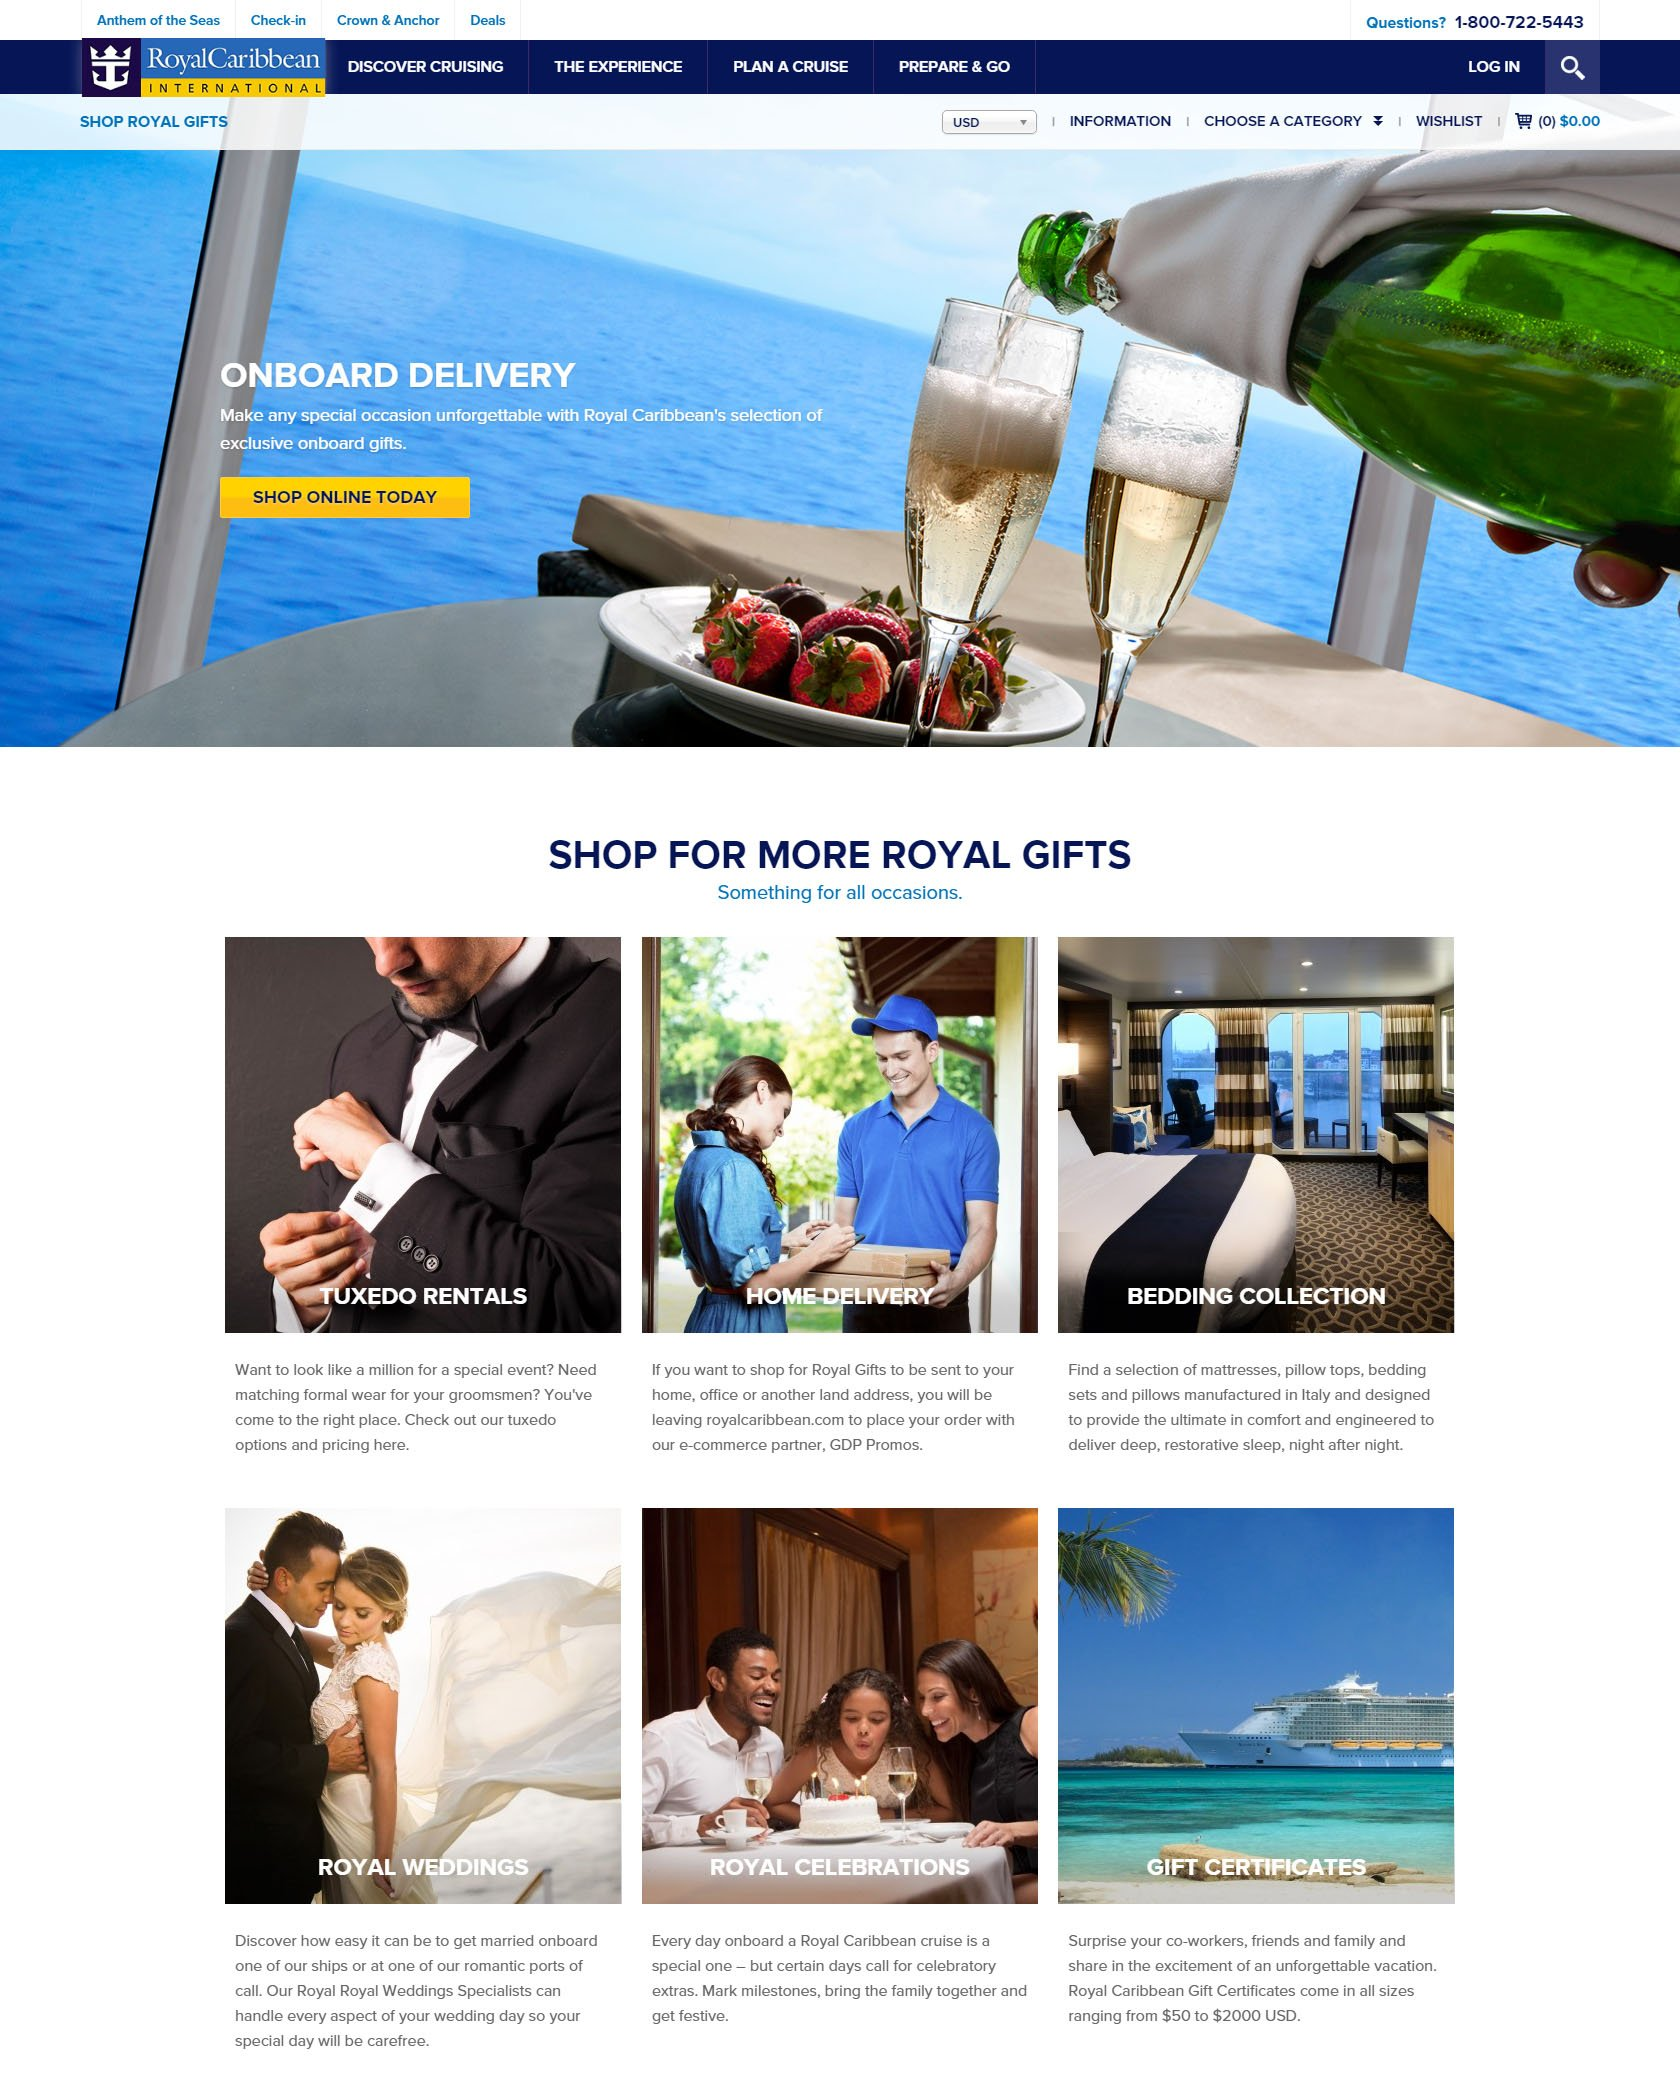 Gifts royal caribbean blog as part of royal caribbeans overall redesign of their web site the royal gifts section of the site now has a new look to go with the new name xflitez Images